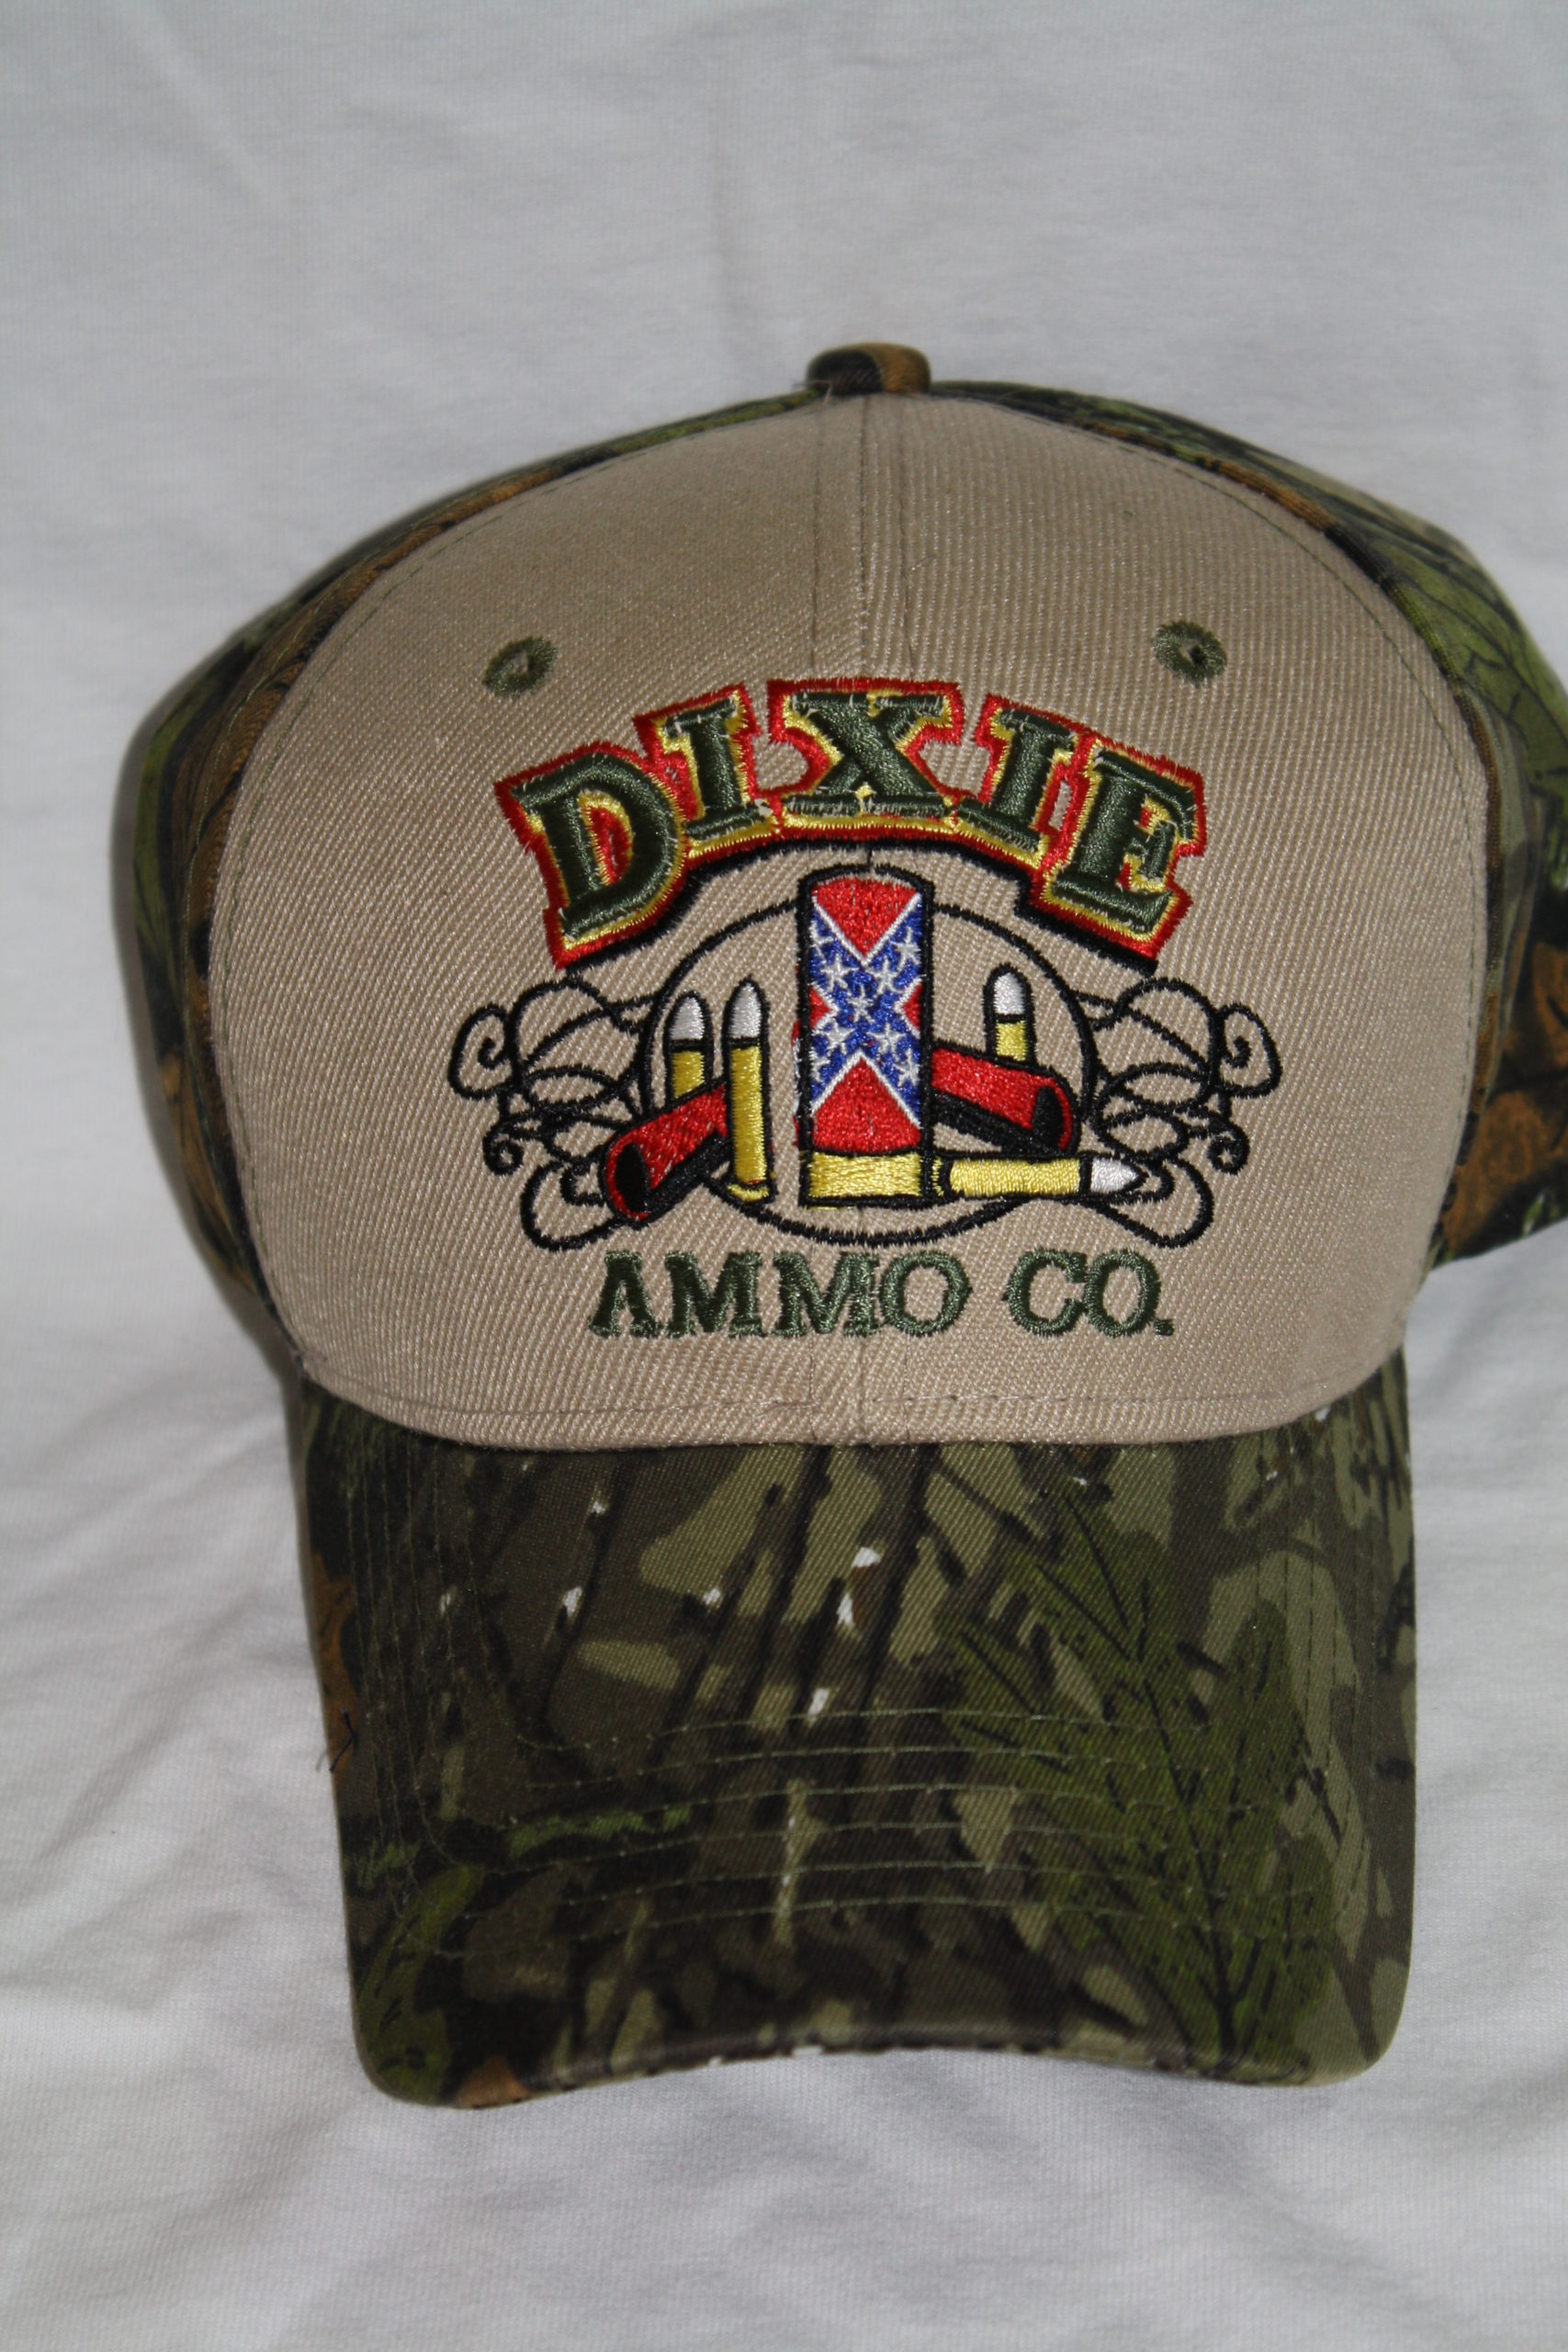 Dixie Ammo Co. Hat